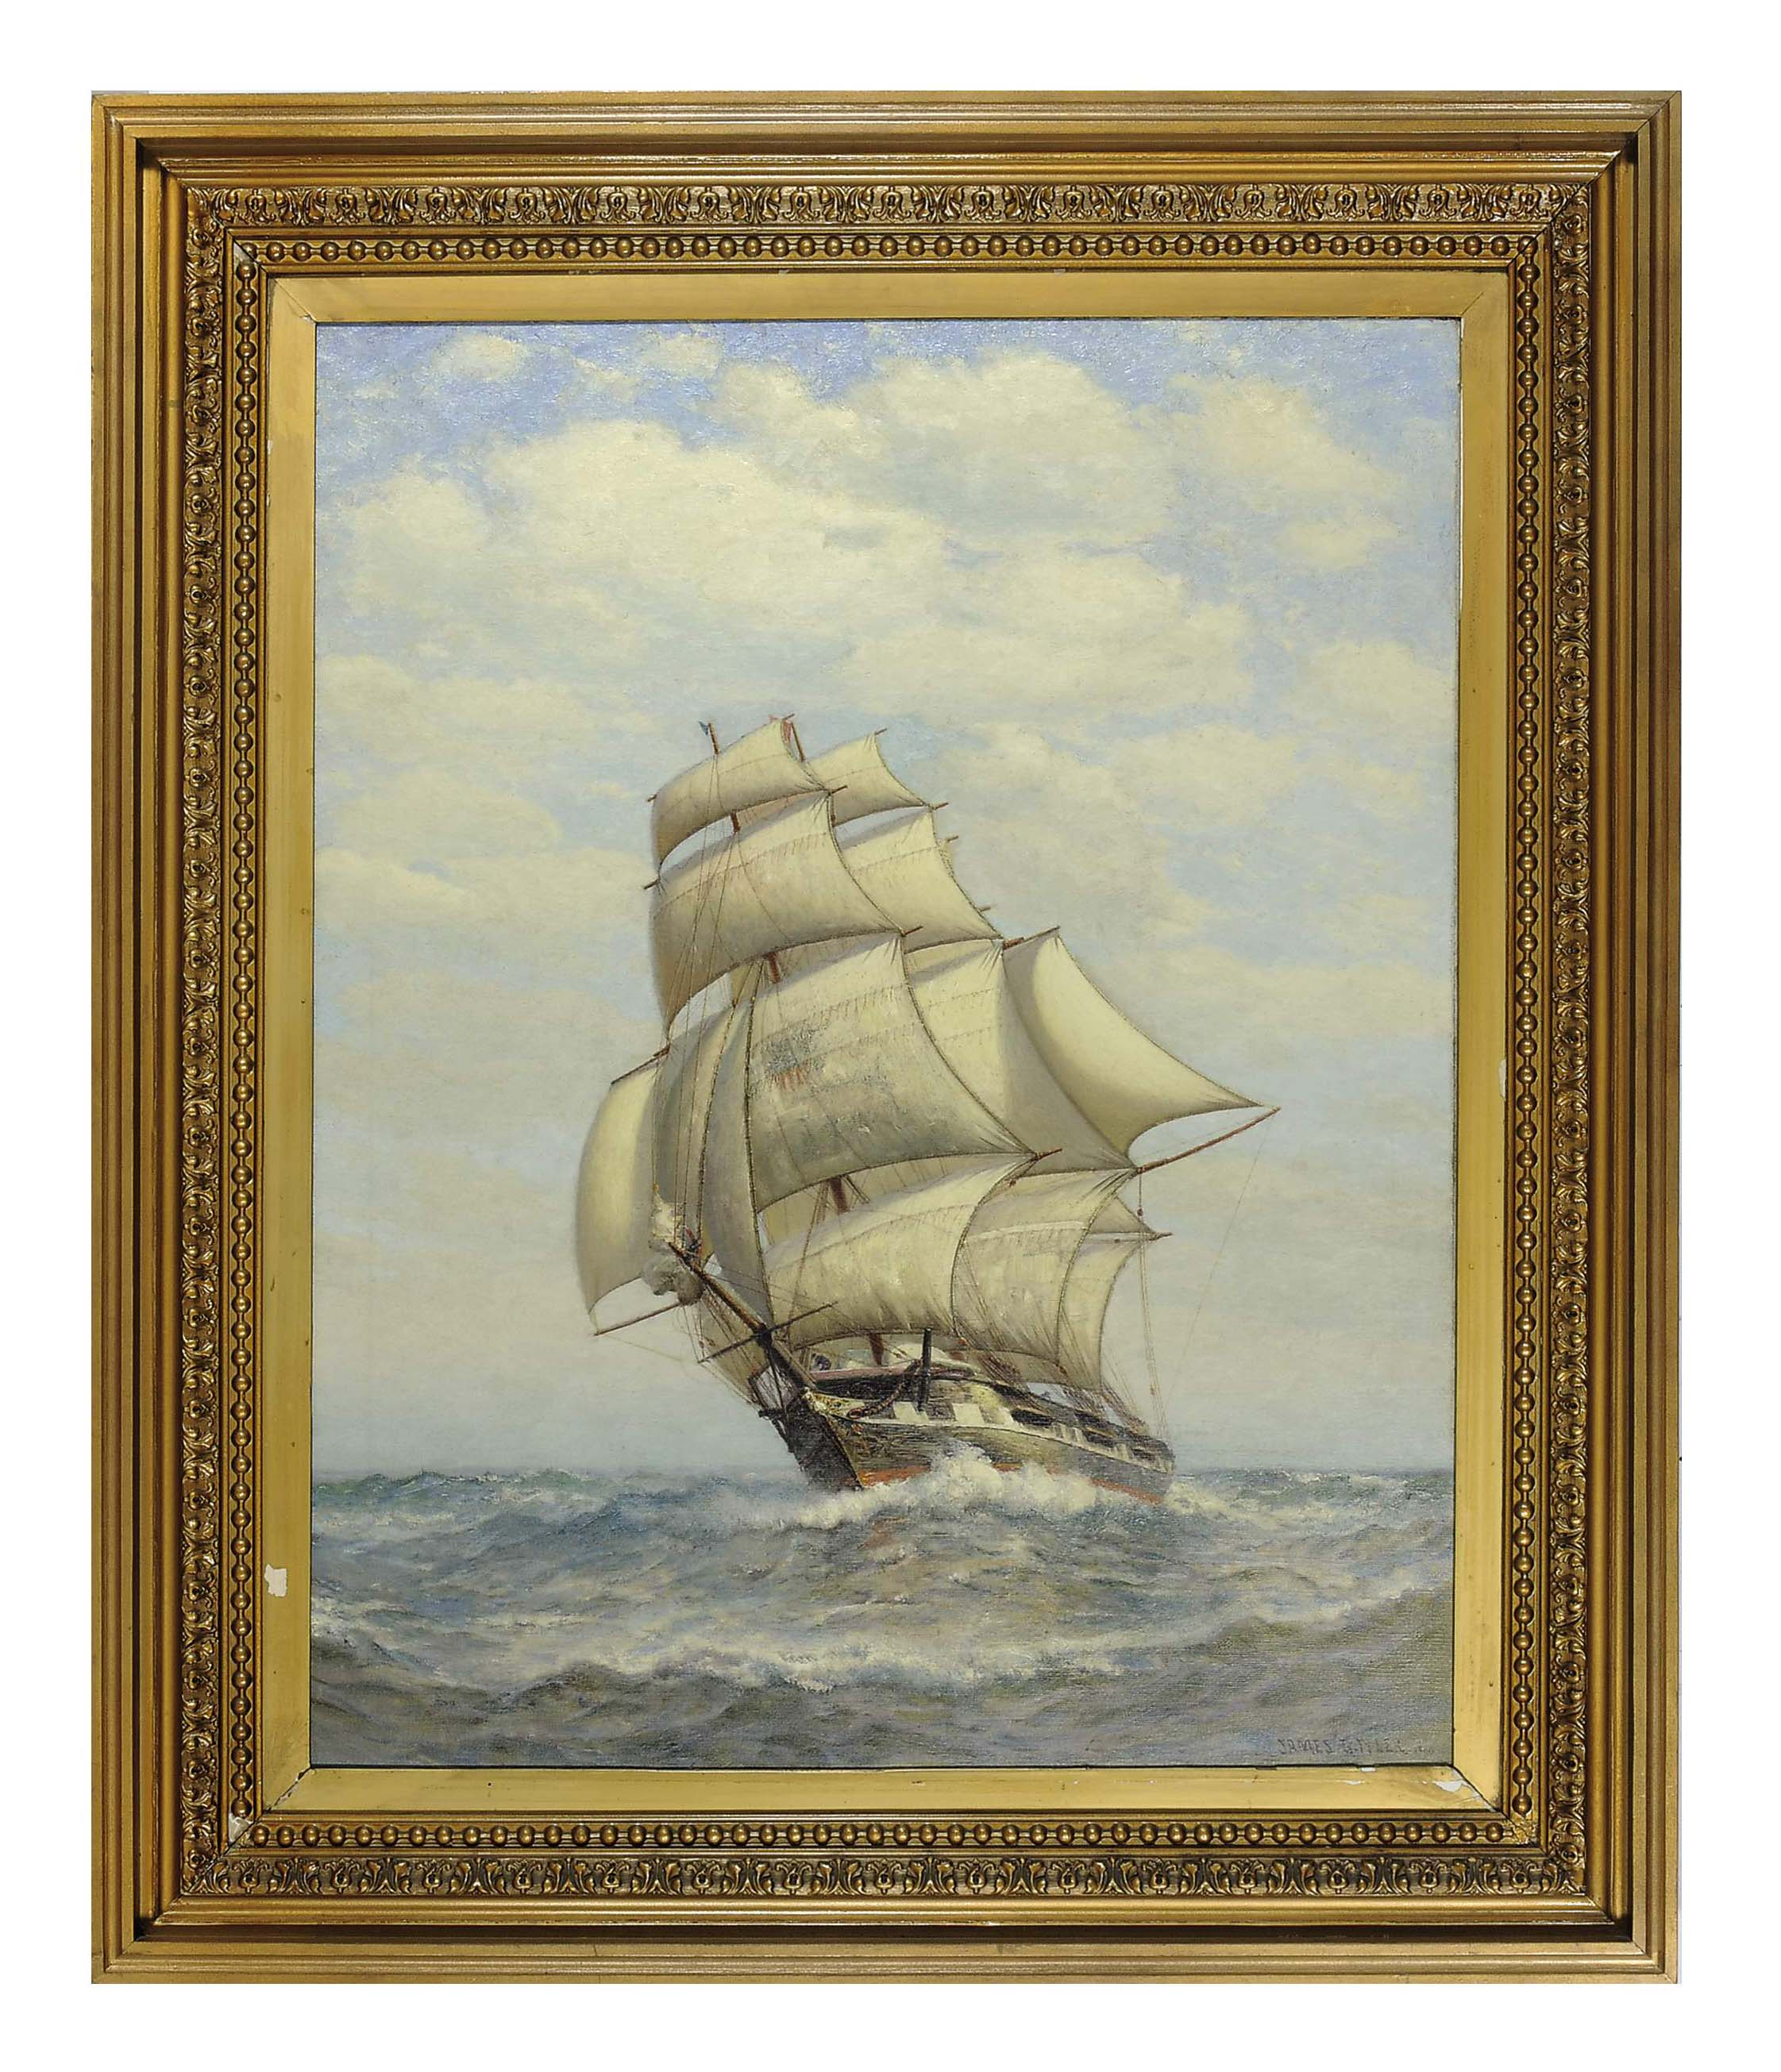 A square rigged ship at sea